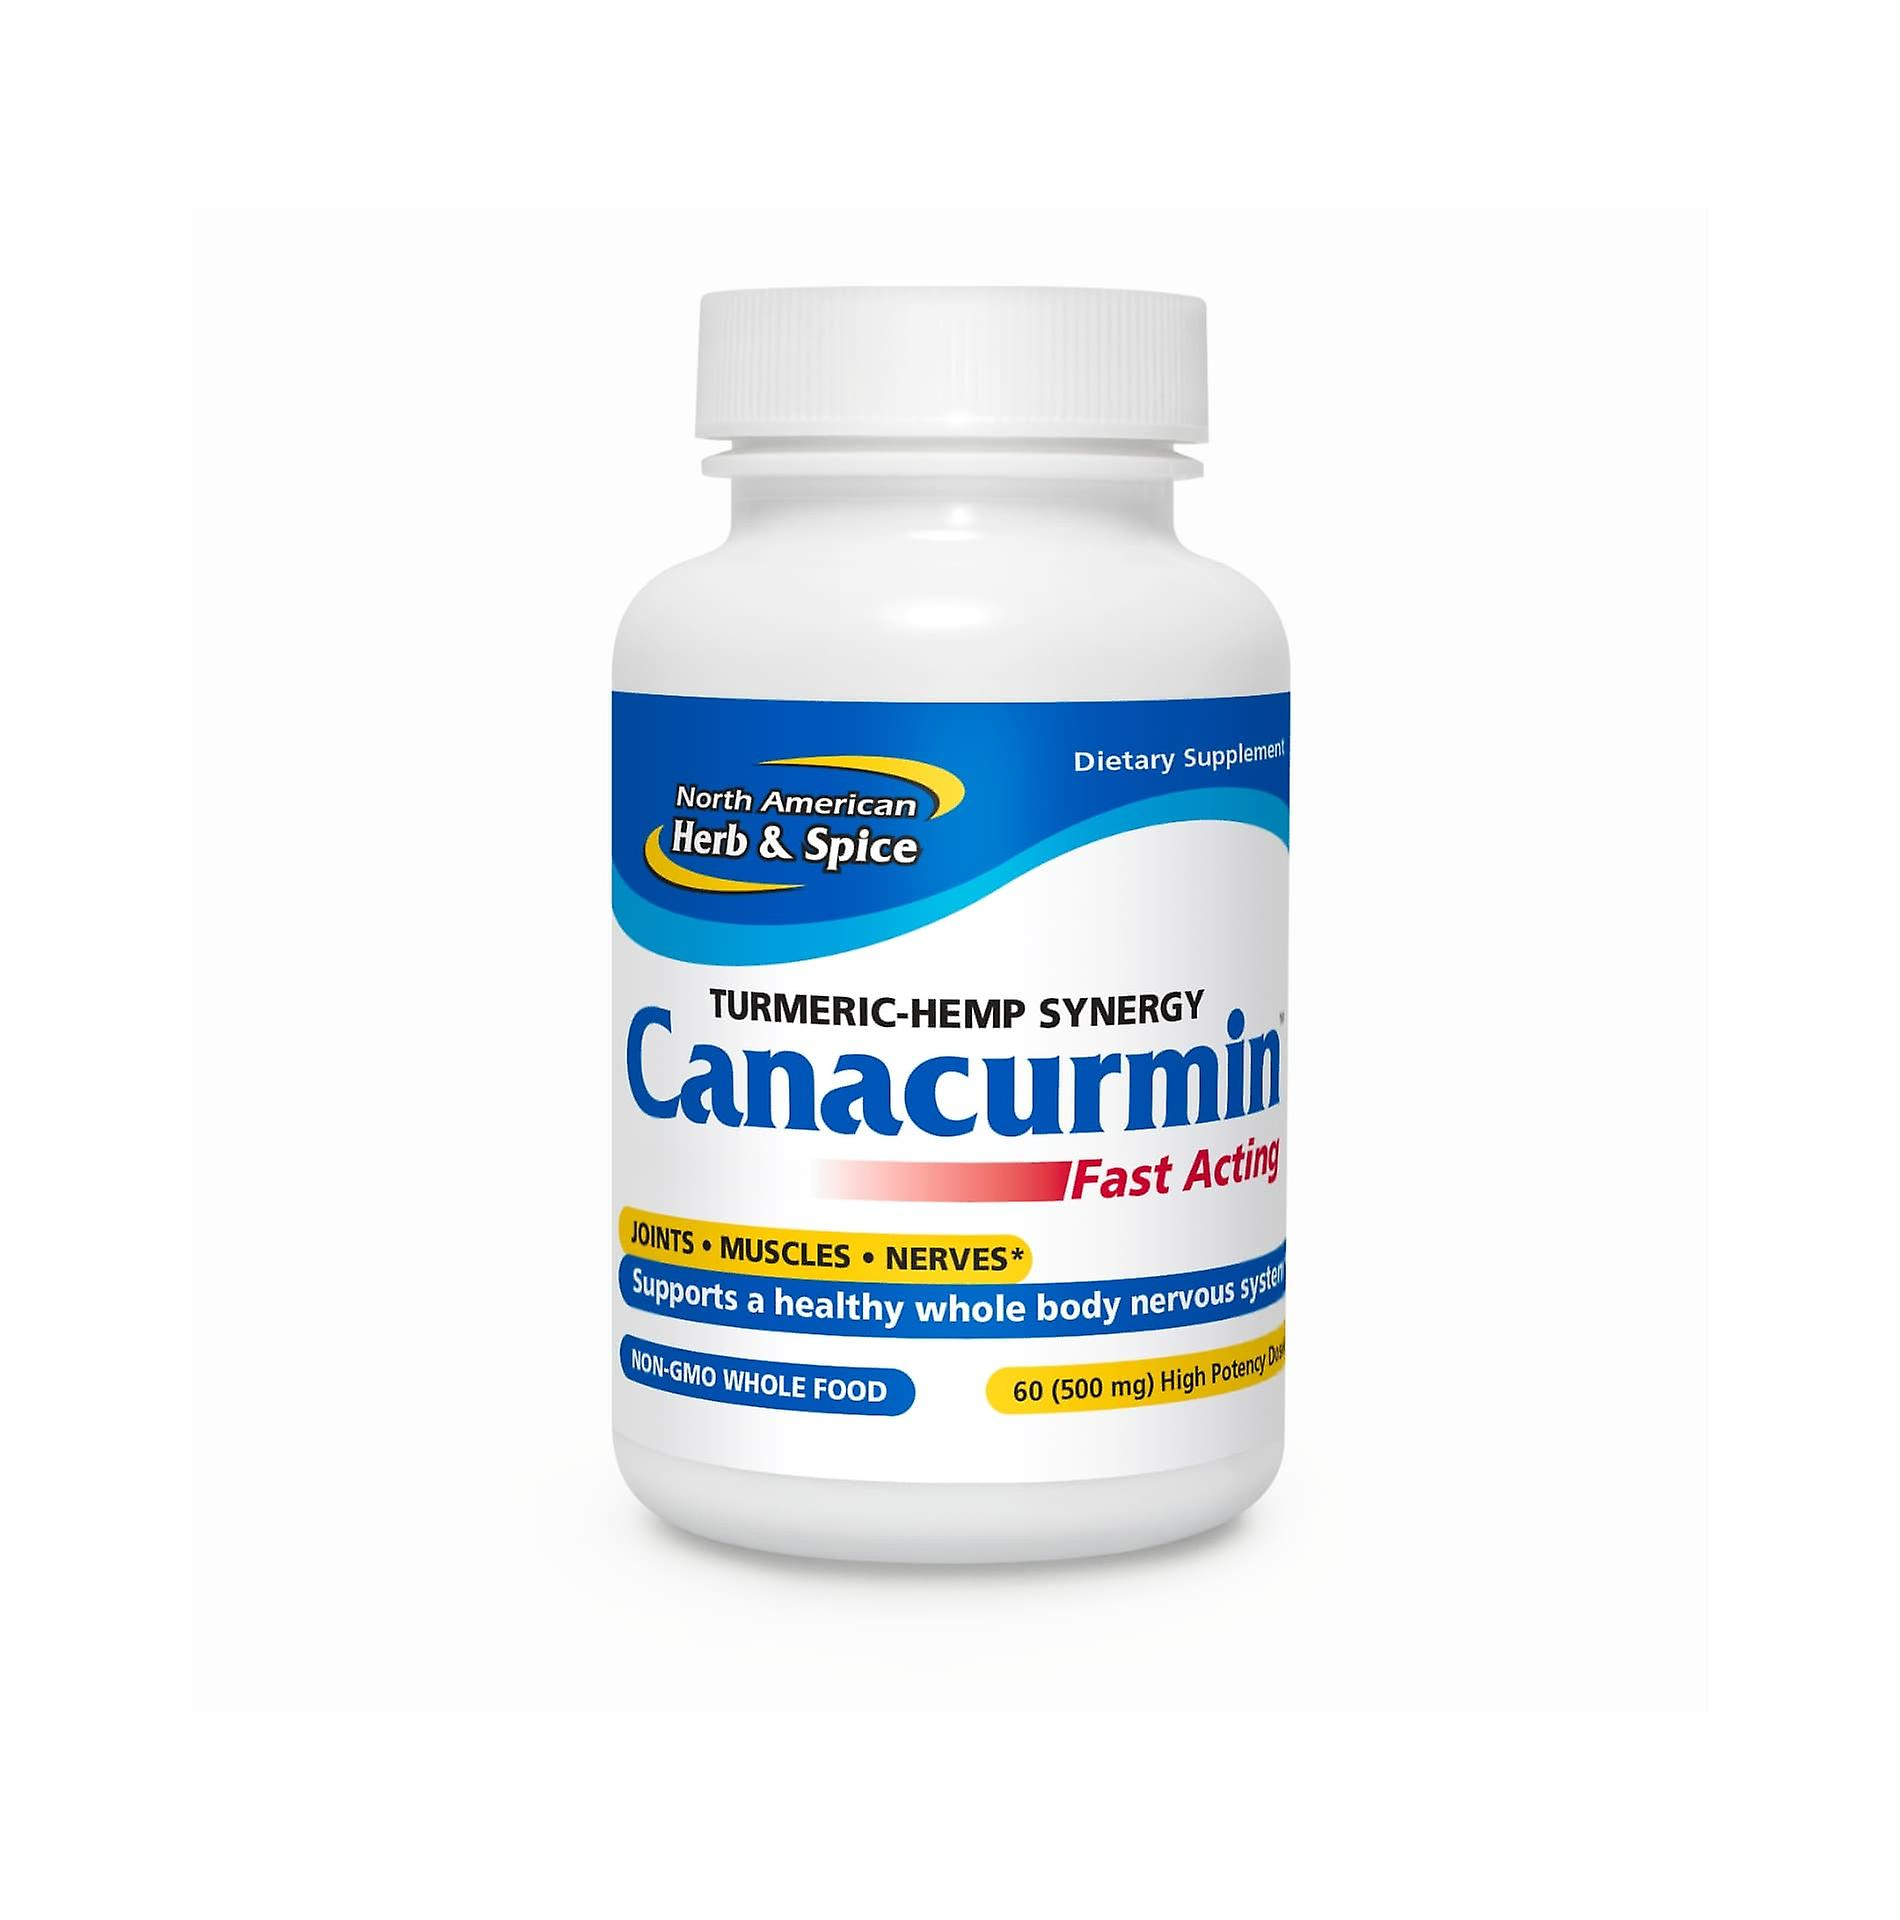 North American Herb & Spice Canacurmin 60 gelcaps